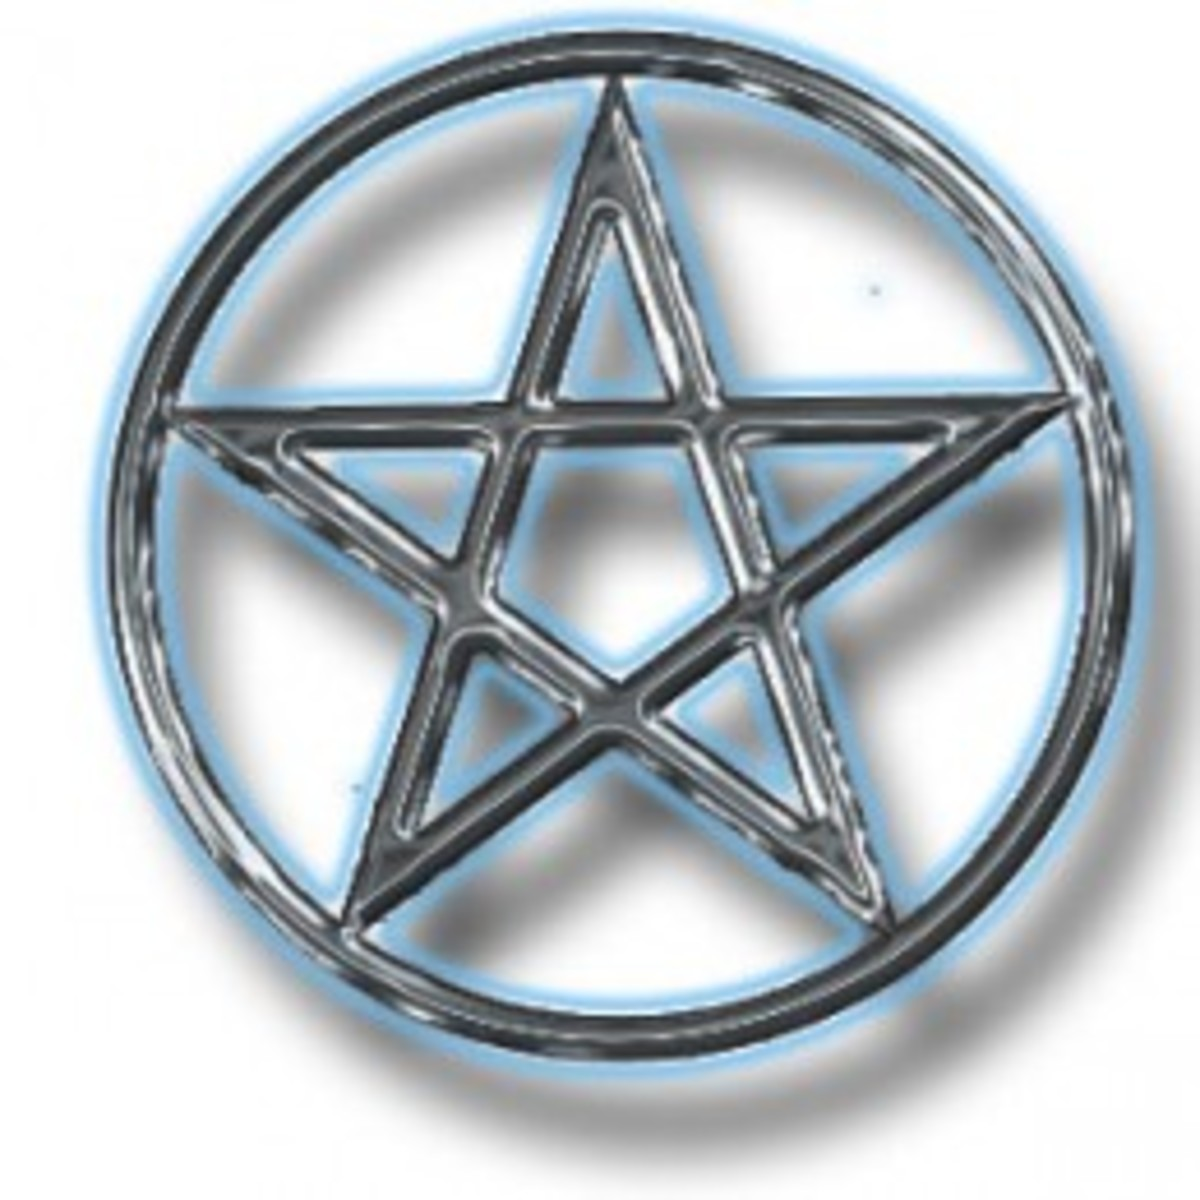 The Problem with Christian Wicca: Why It's Usually Neither